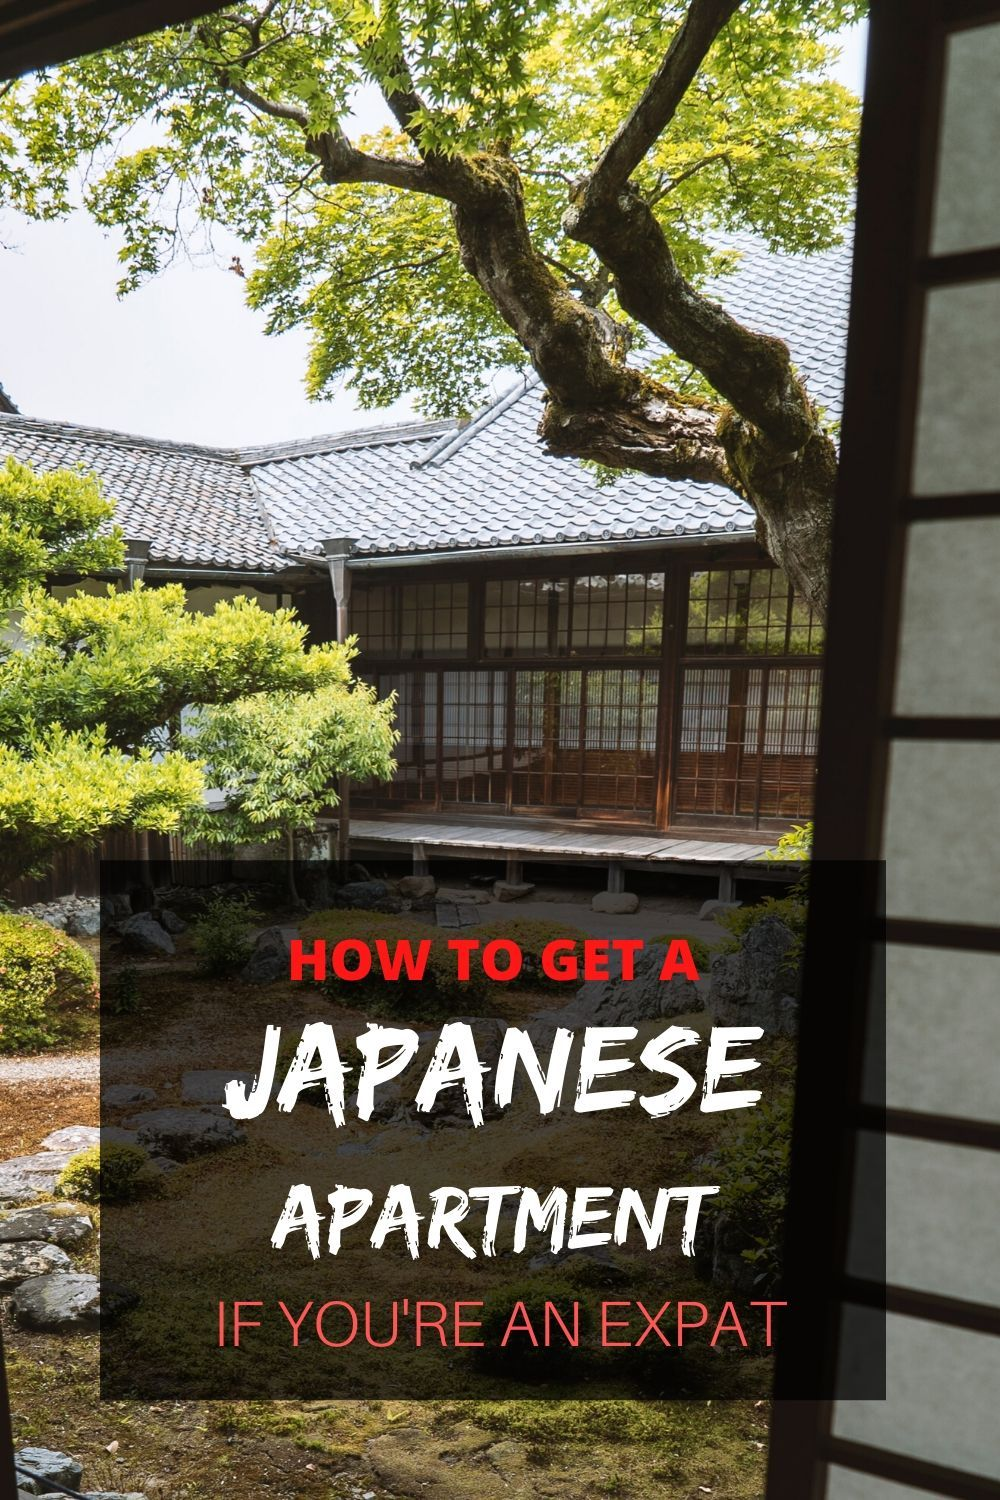 Japanese Apartments Are Hard To Get If You Re A Foreigner Even Small Japanese Apartments In Tokyo And Other Citi In 2020 Work In Japan Japanese Apartment What Is Like